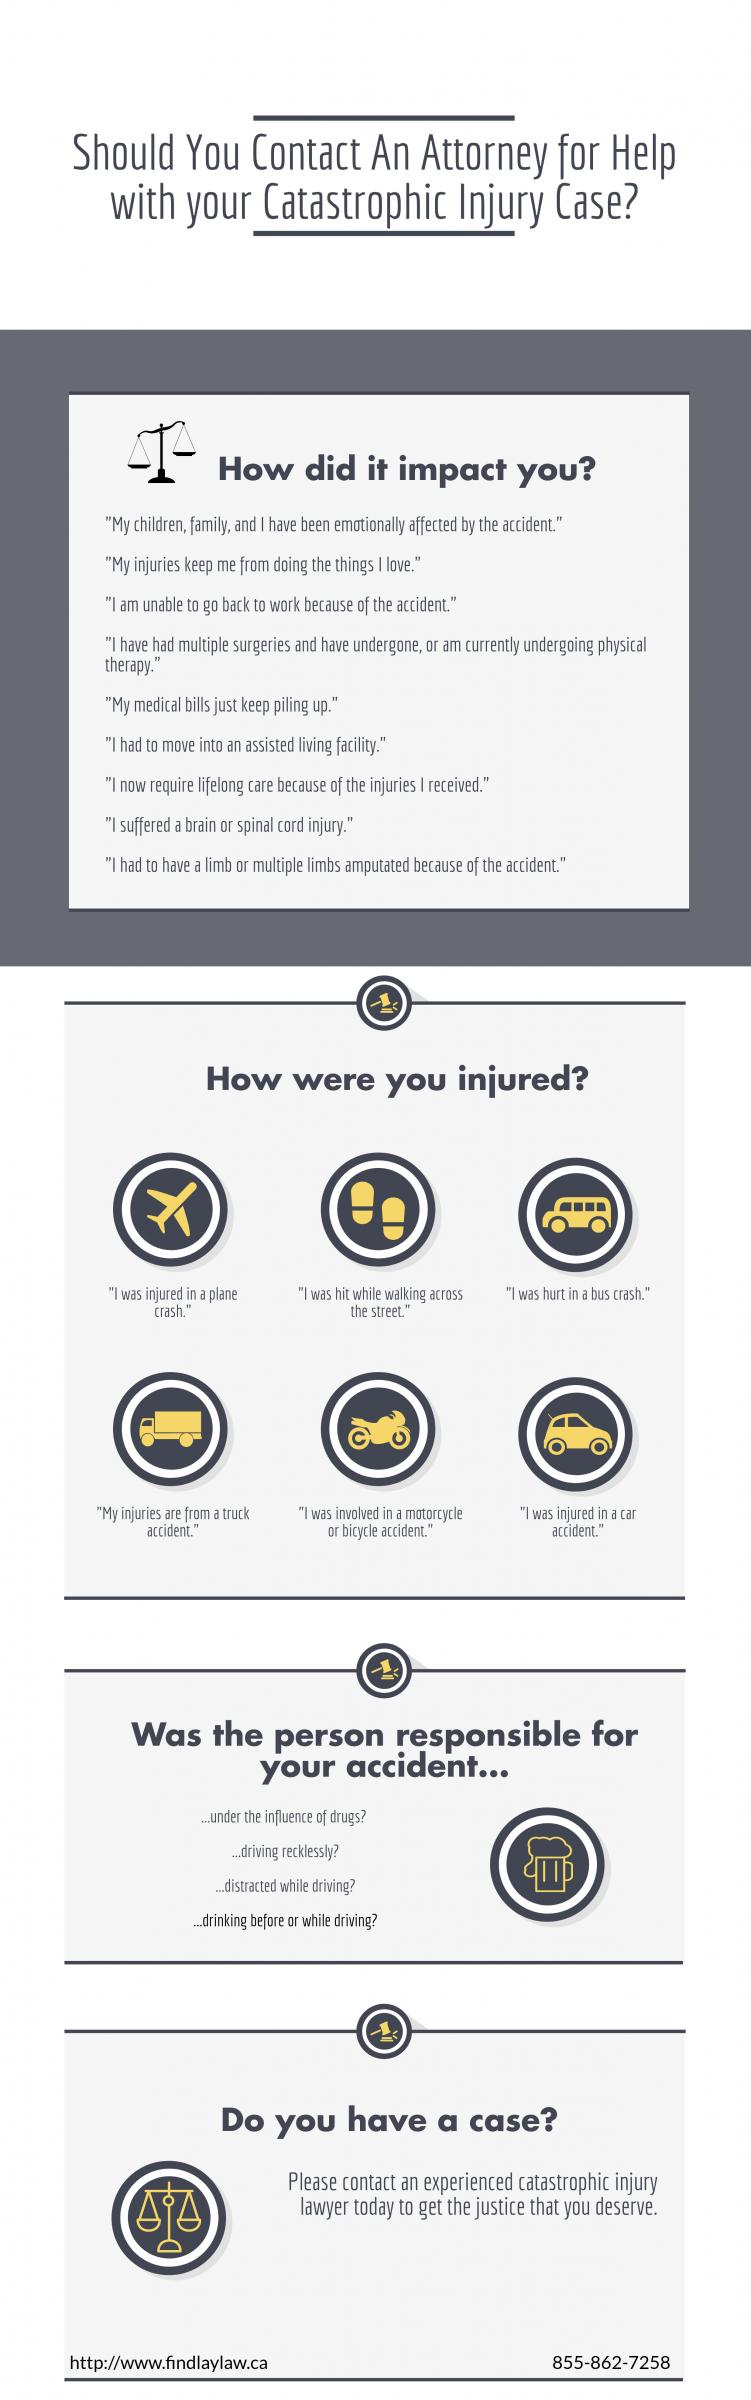 Should You Contact a Catastrophic Personal Injury Lawyer